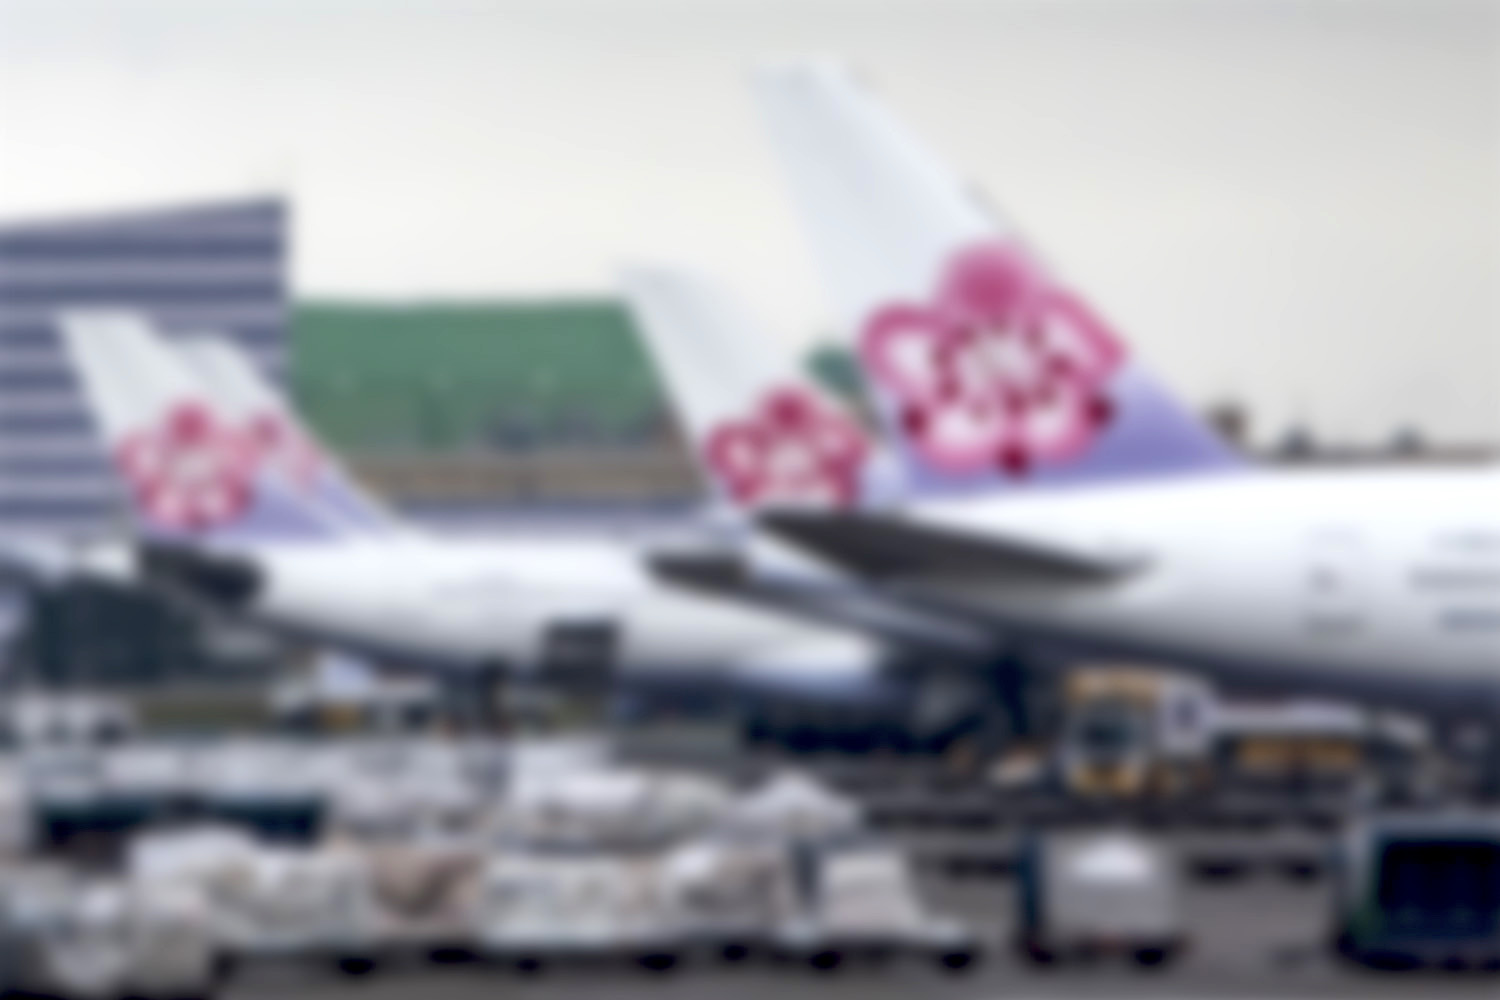 The China Airlines Nomenclature Nightmare